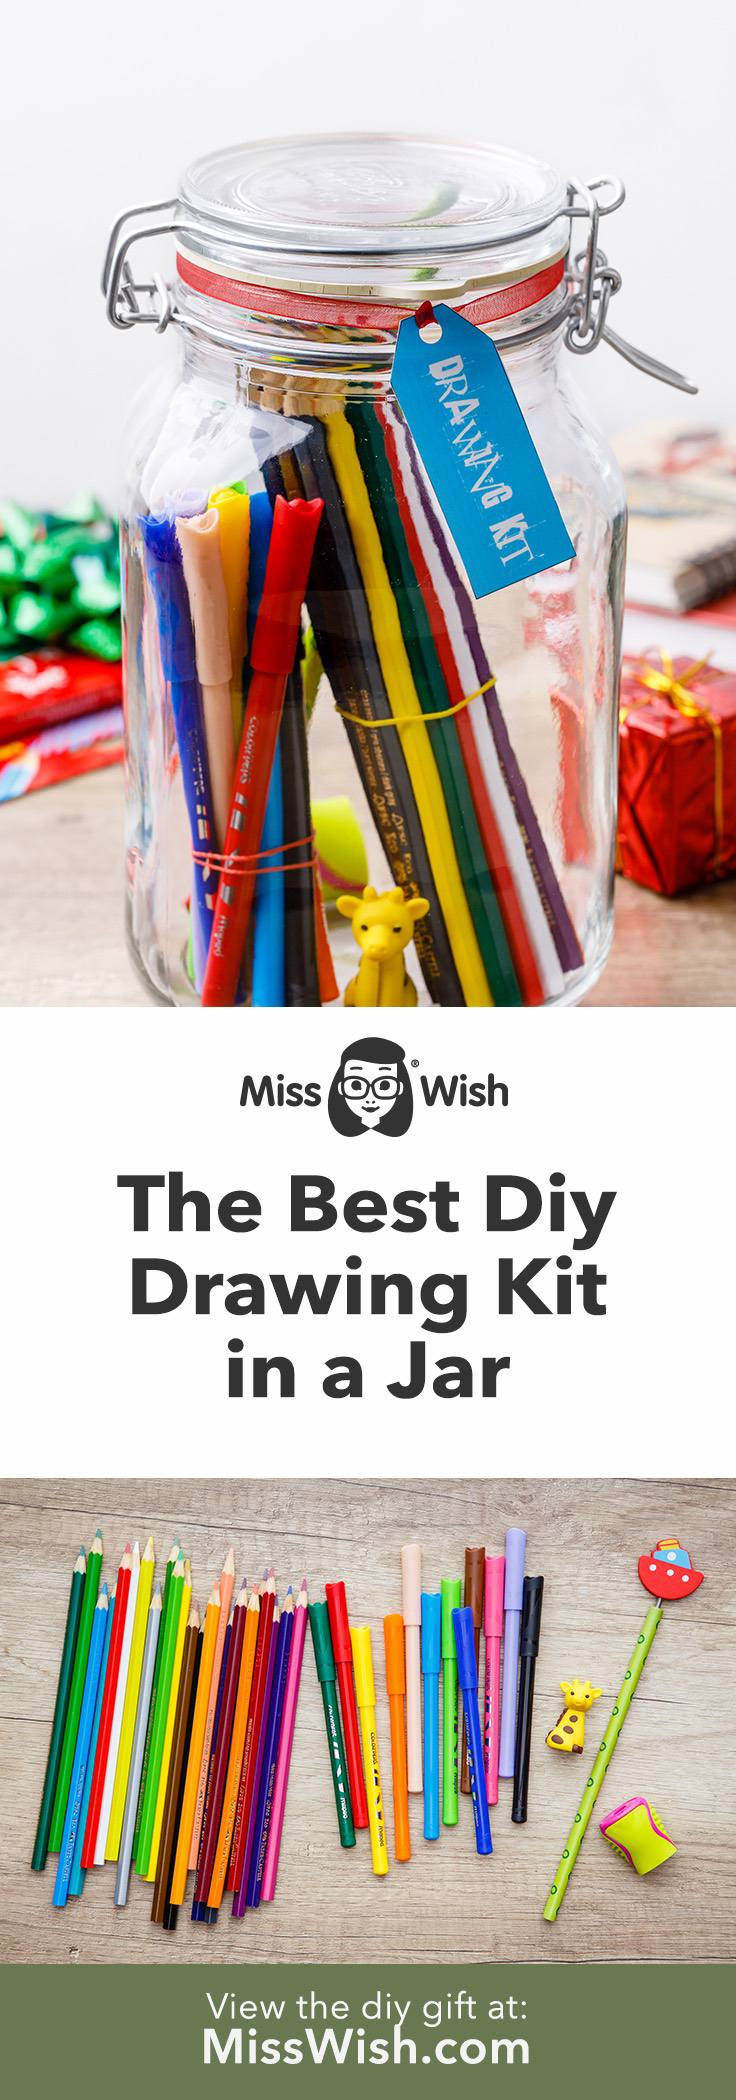 Easy Homemade Drawing Kit Gift Set for Kids And Adults